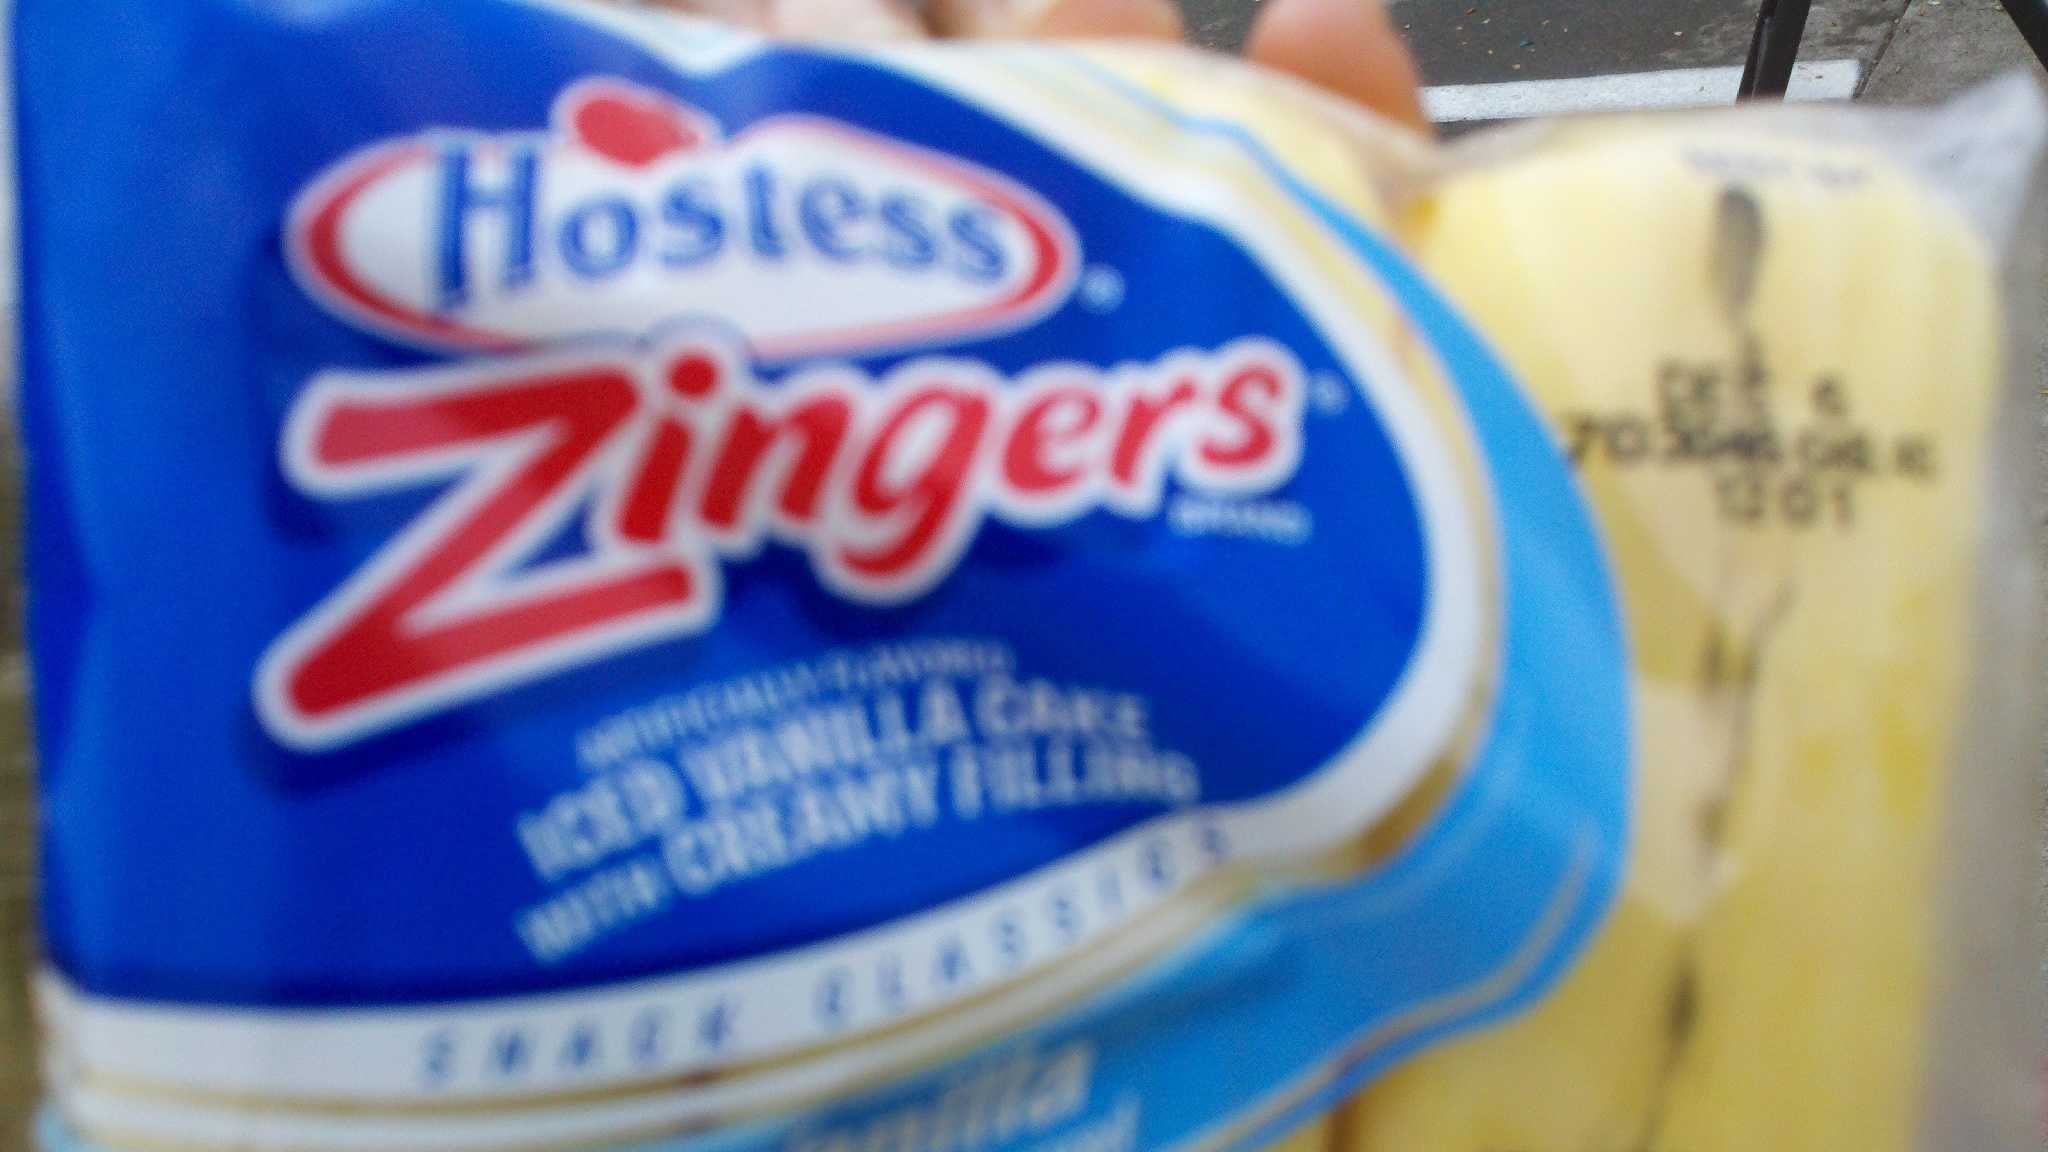 One of the last bags of Zingers (Nov. 16, 2012).